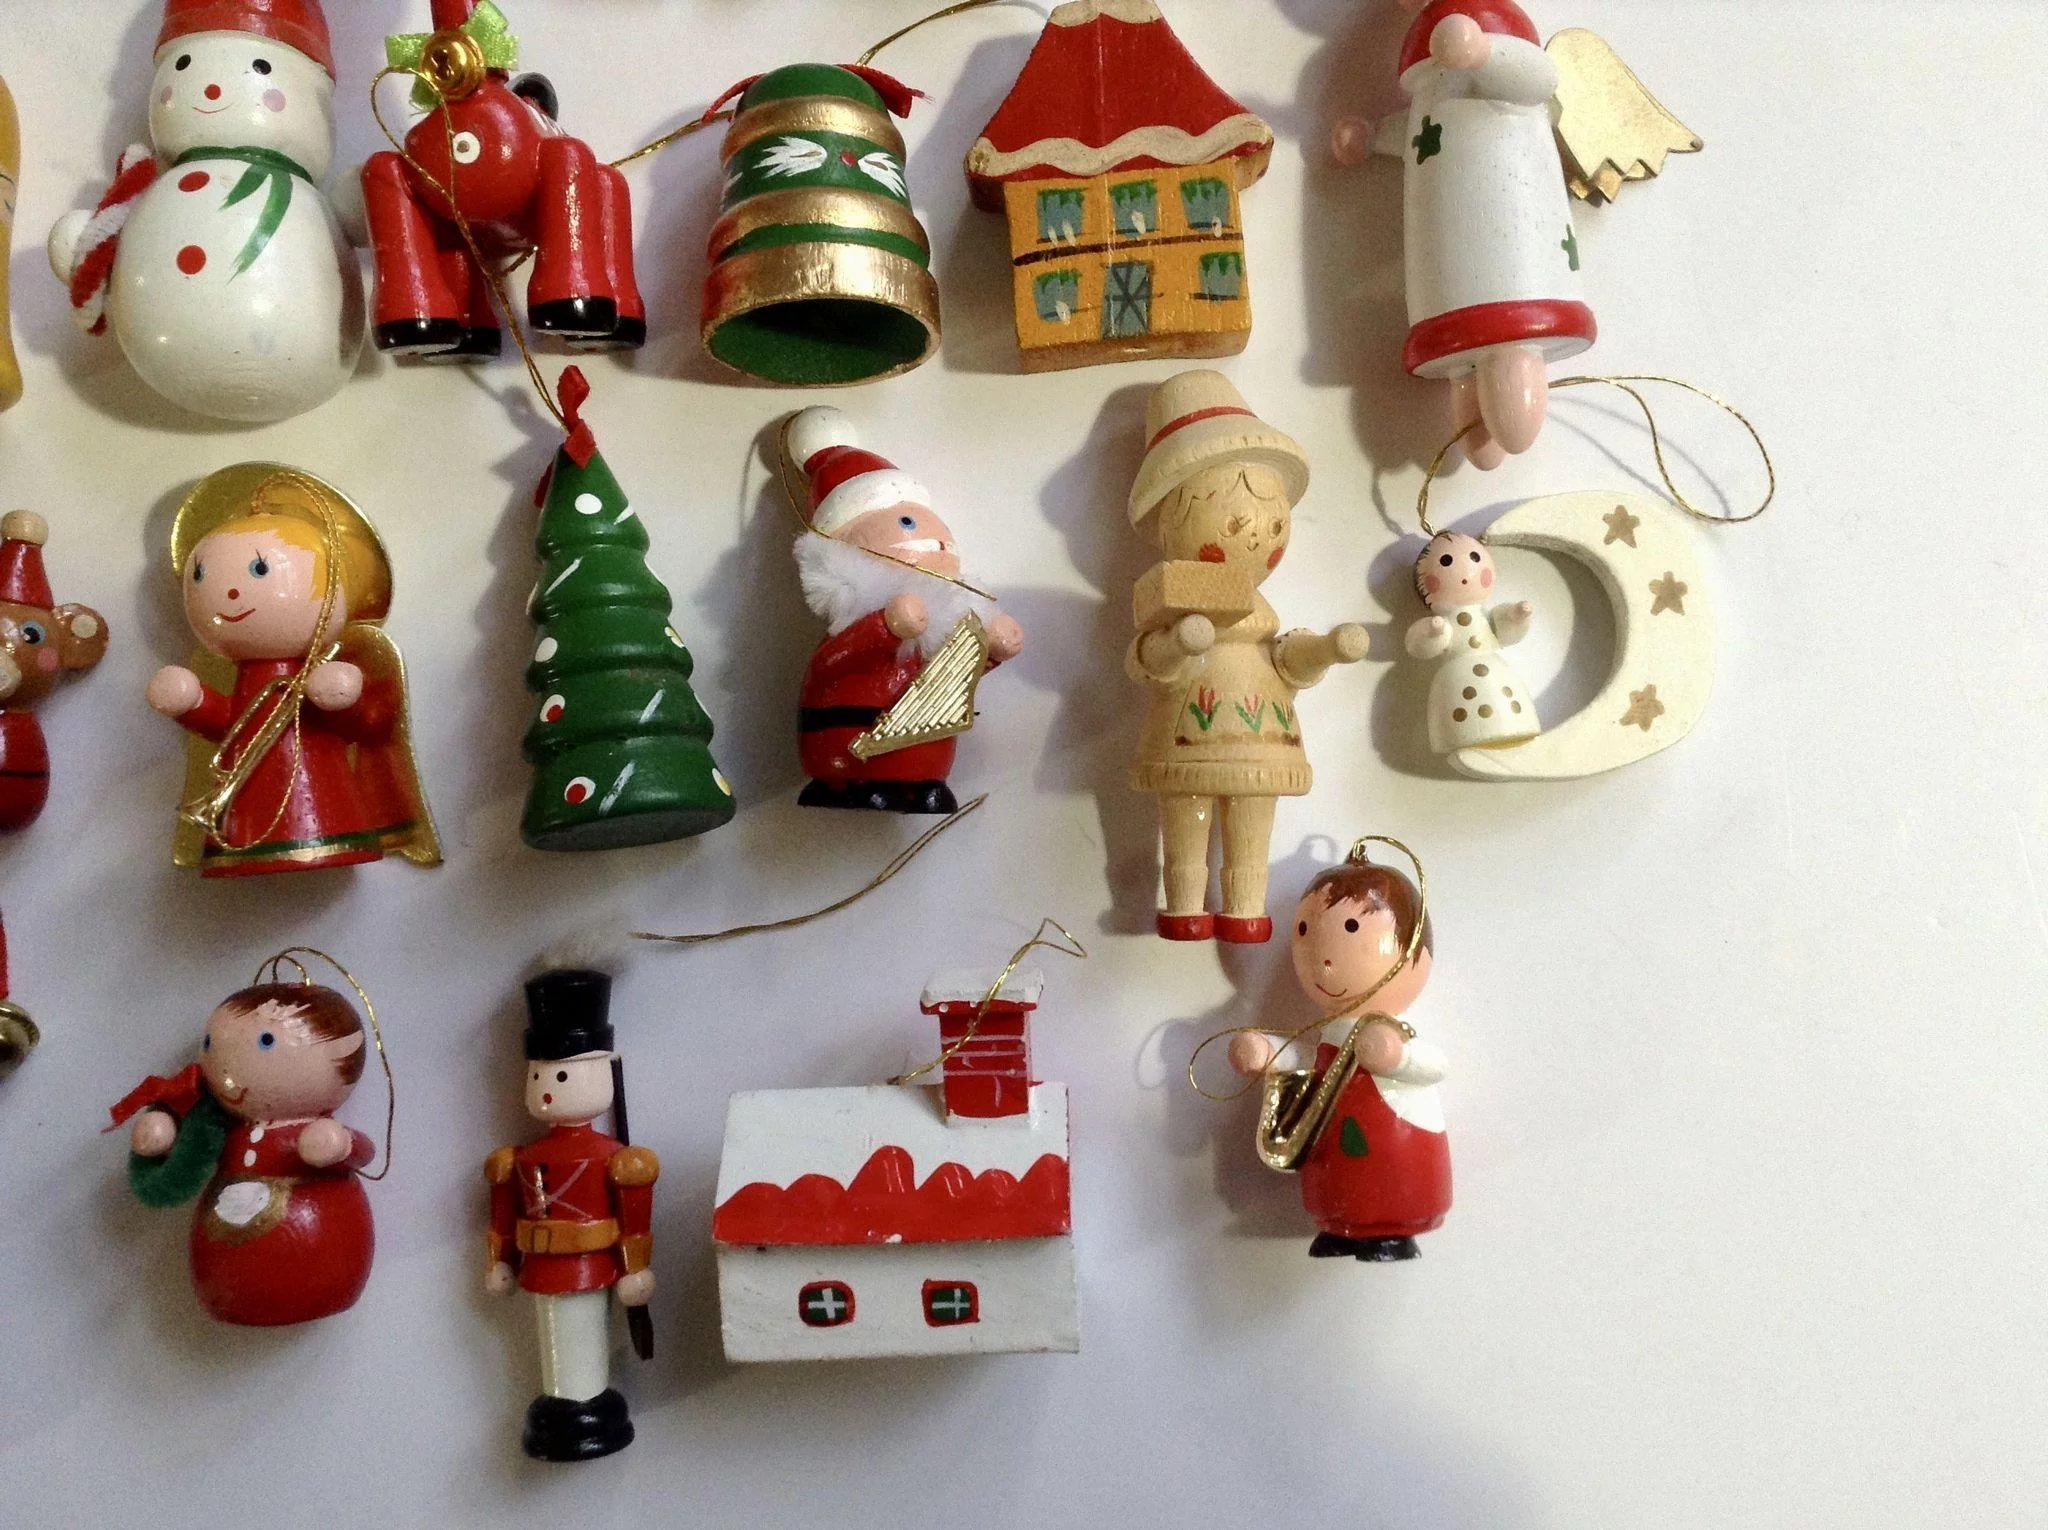 click to expand vintage wooden christmas tree ornaments and decorations angels horses